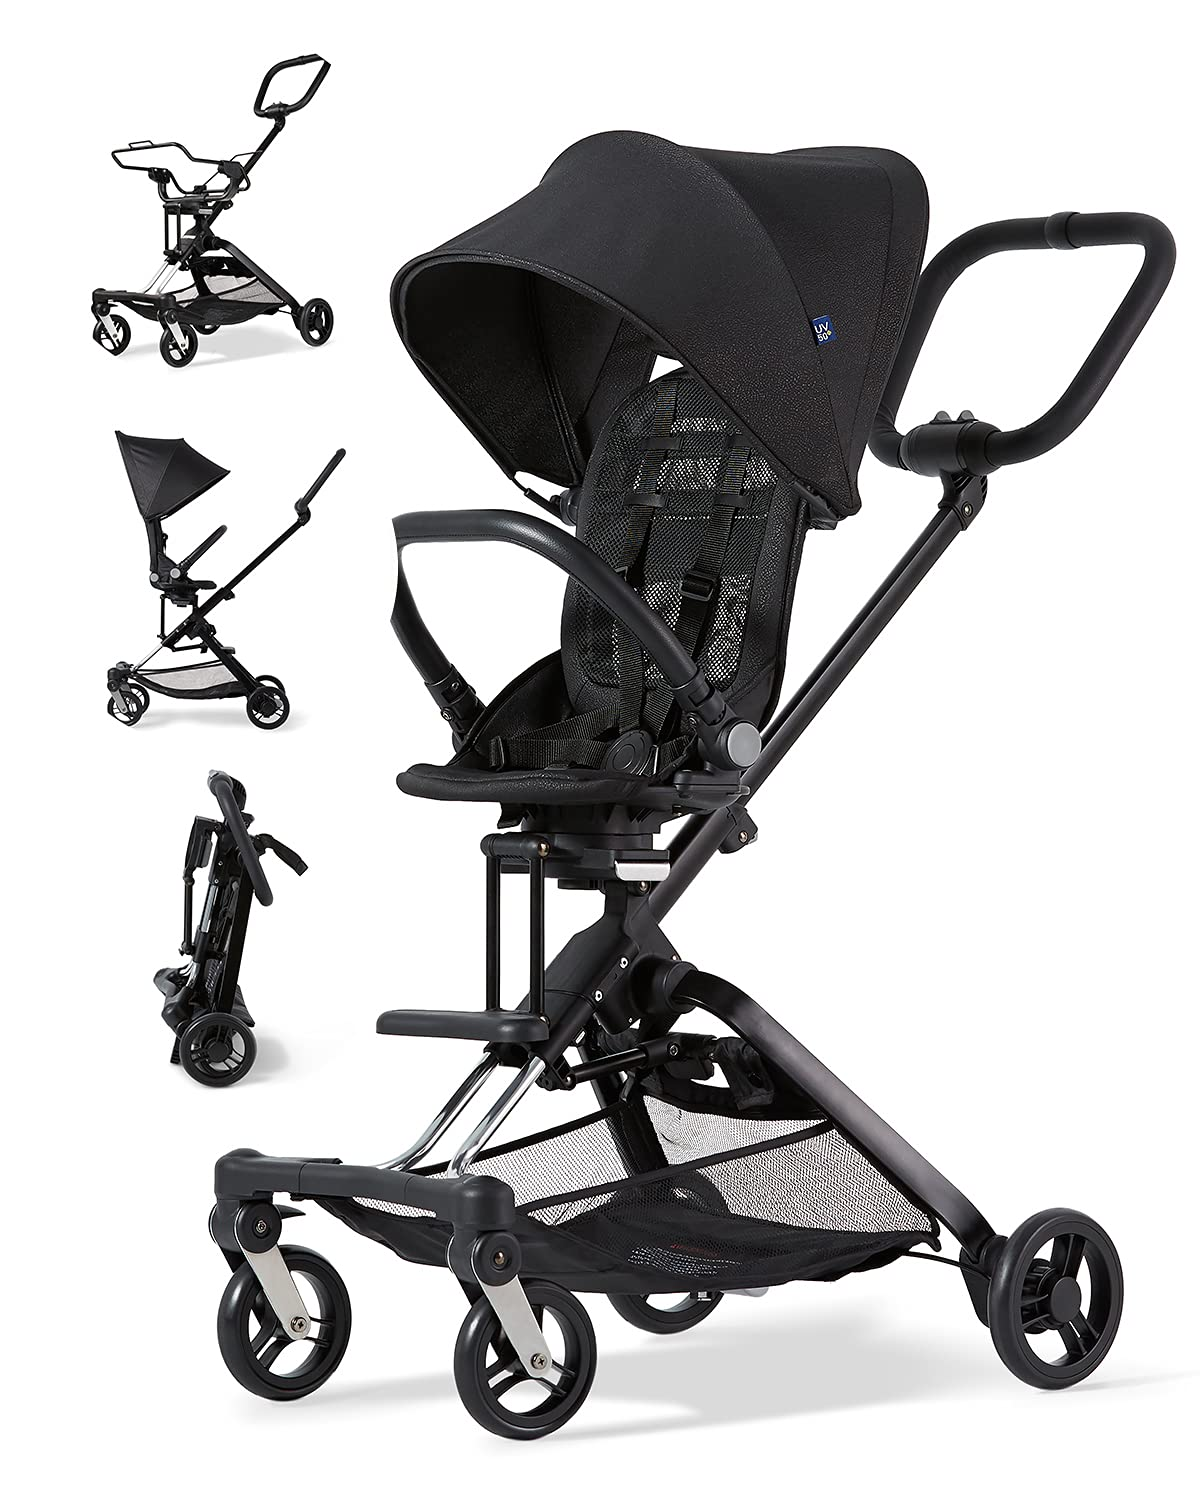 Unilove 2-in-1 On The Go Lightweight Stroller for Toddlers, Frame Stroller, and Infant Car Seat Carrier with Anti-UV Canopy, Reclinable and Rear/Front Reversible Seat, and Adjustable Handle